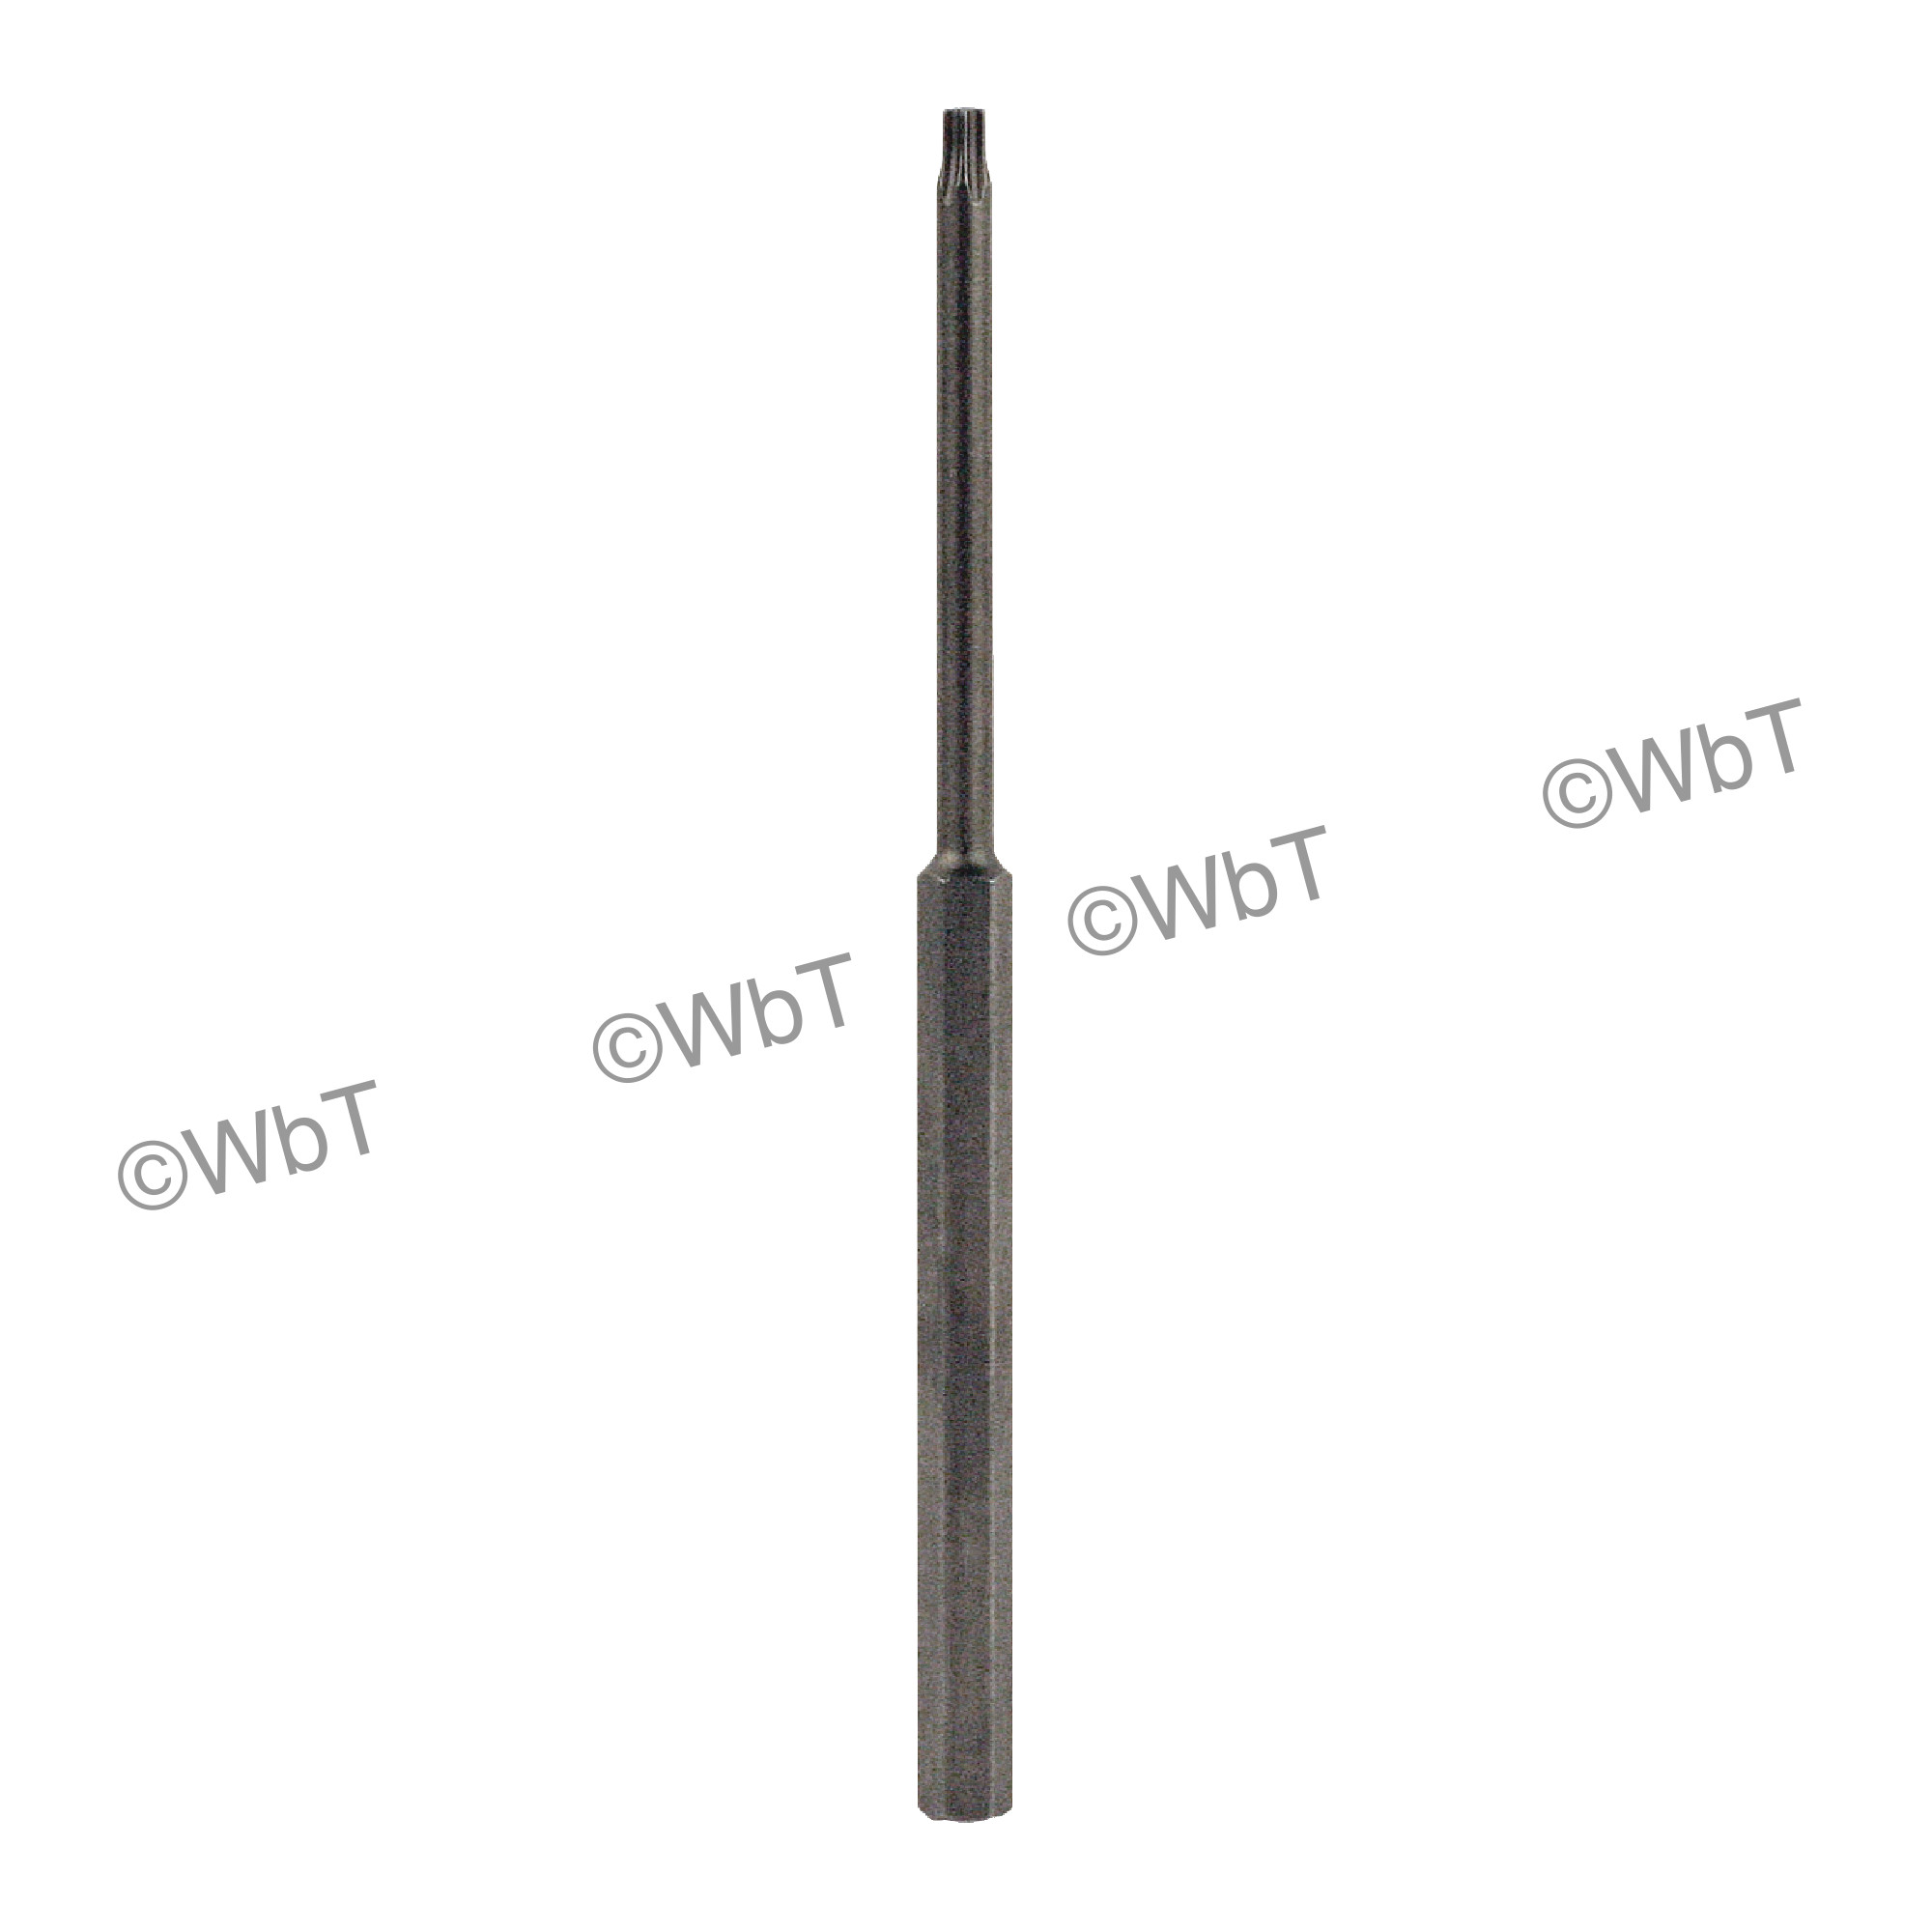 Replacement Part For Iscarmill Indexable 45° End Mill